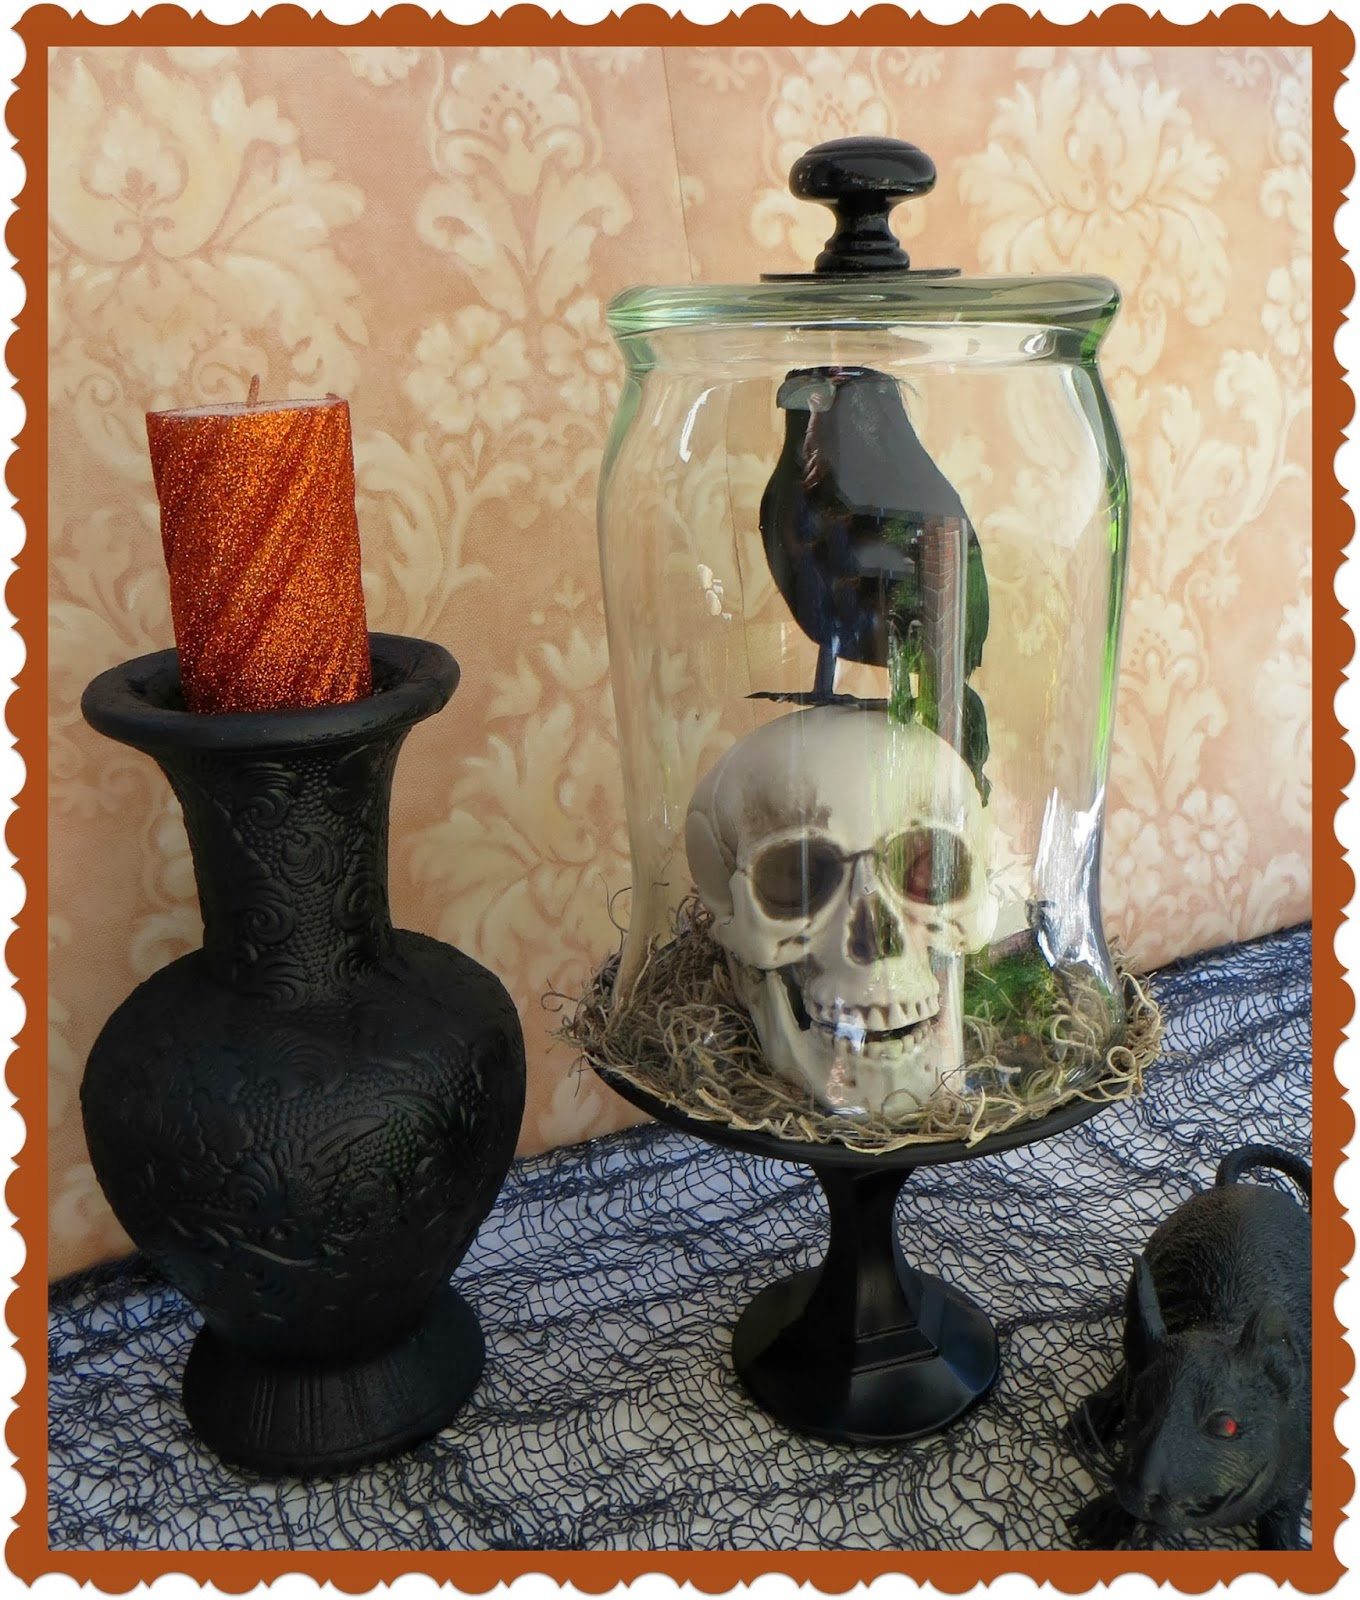 Crafty In Crosby: Make Your Own Bell Jar Or Cloche